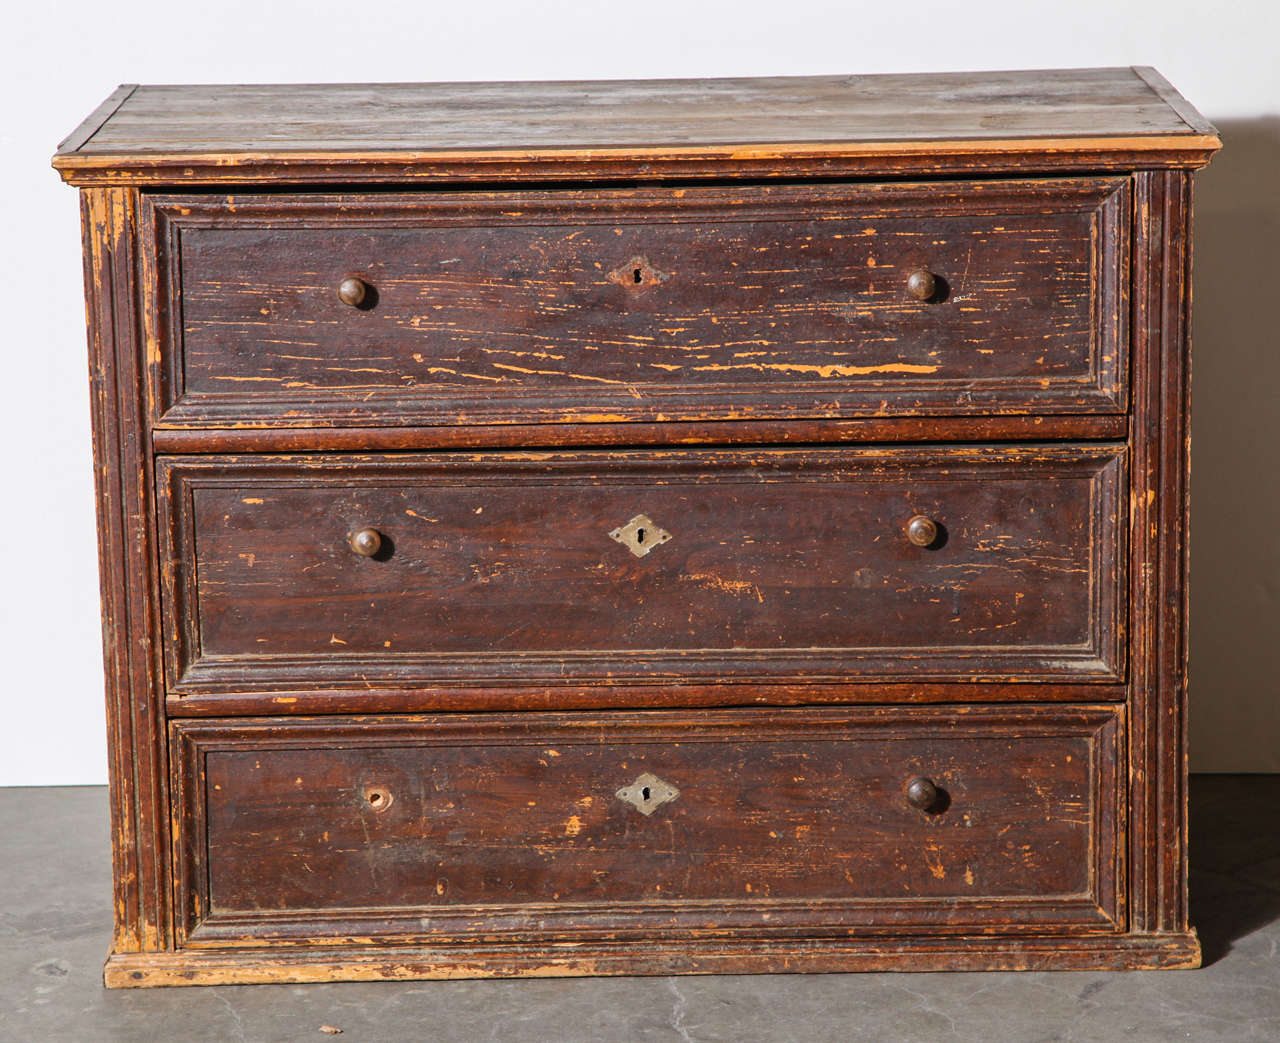 Large chest of drawers made in Belgium in the 19th century. Distressed but all drawers function. Original key included.